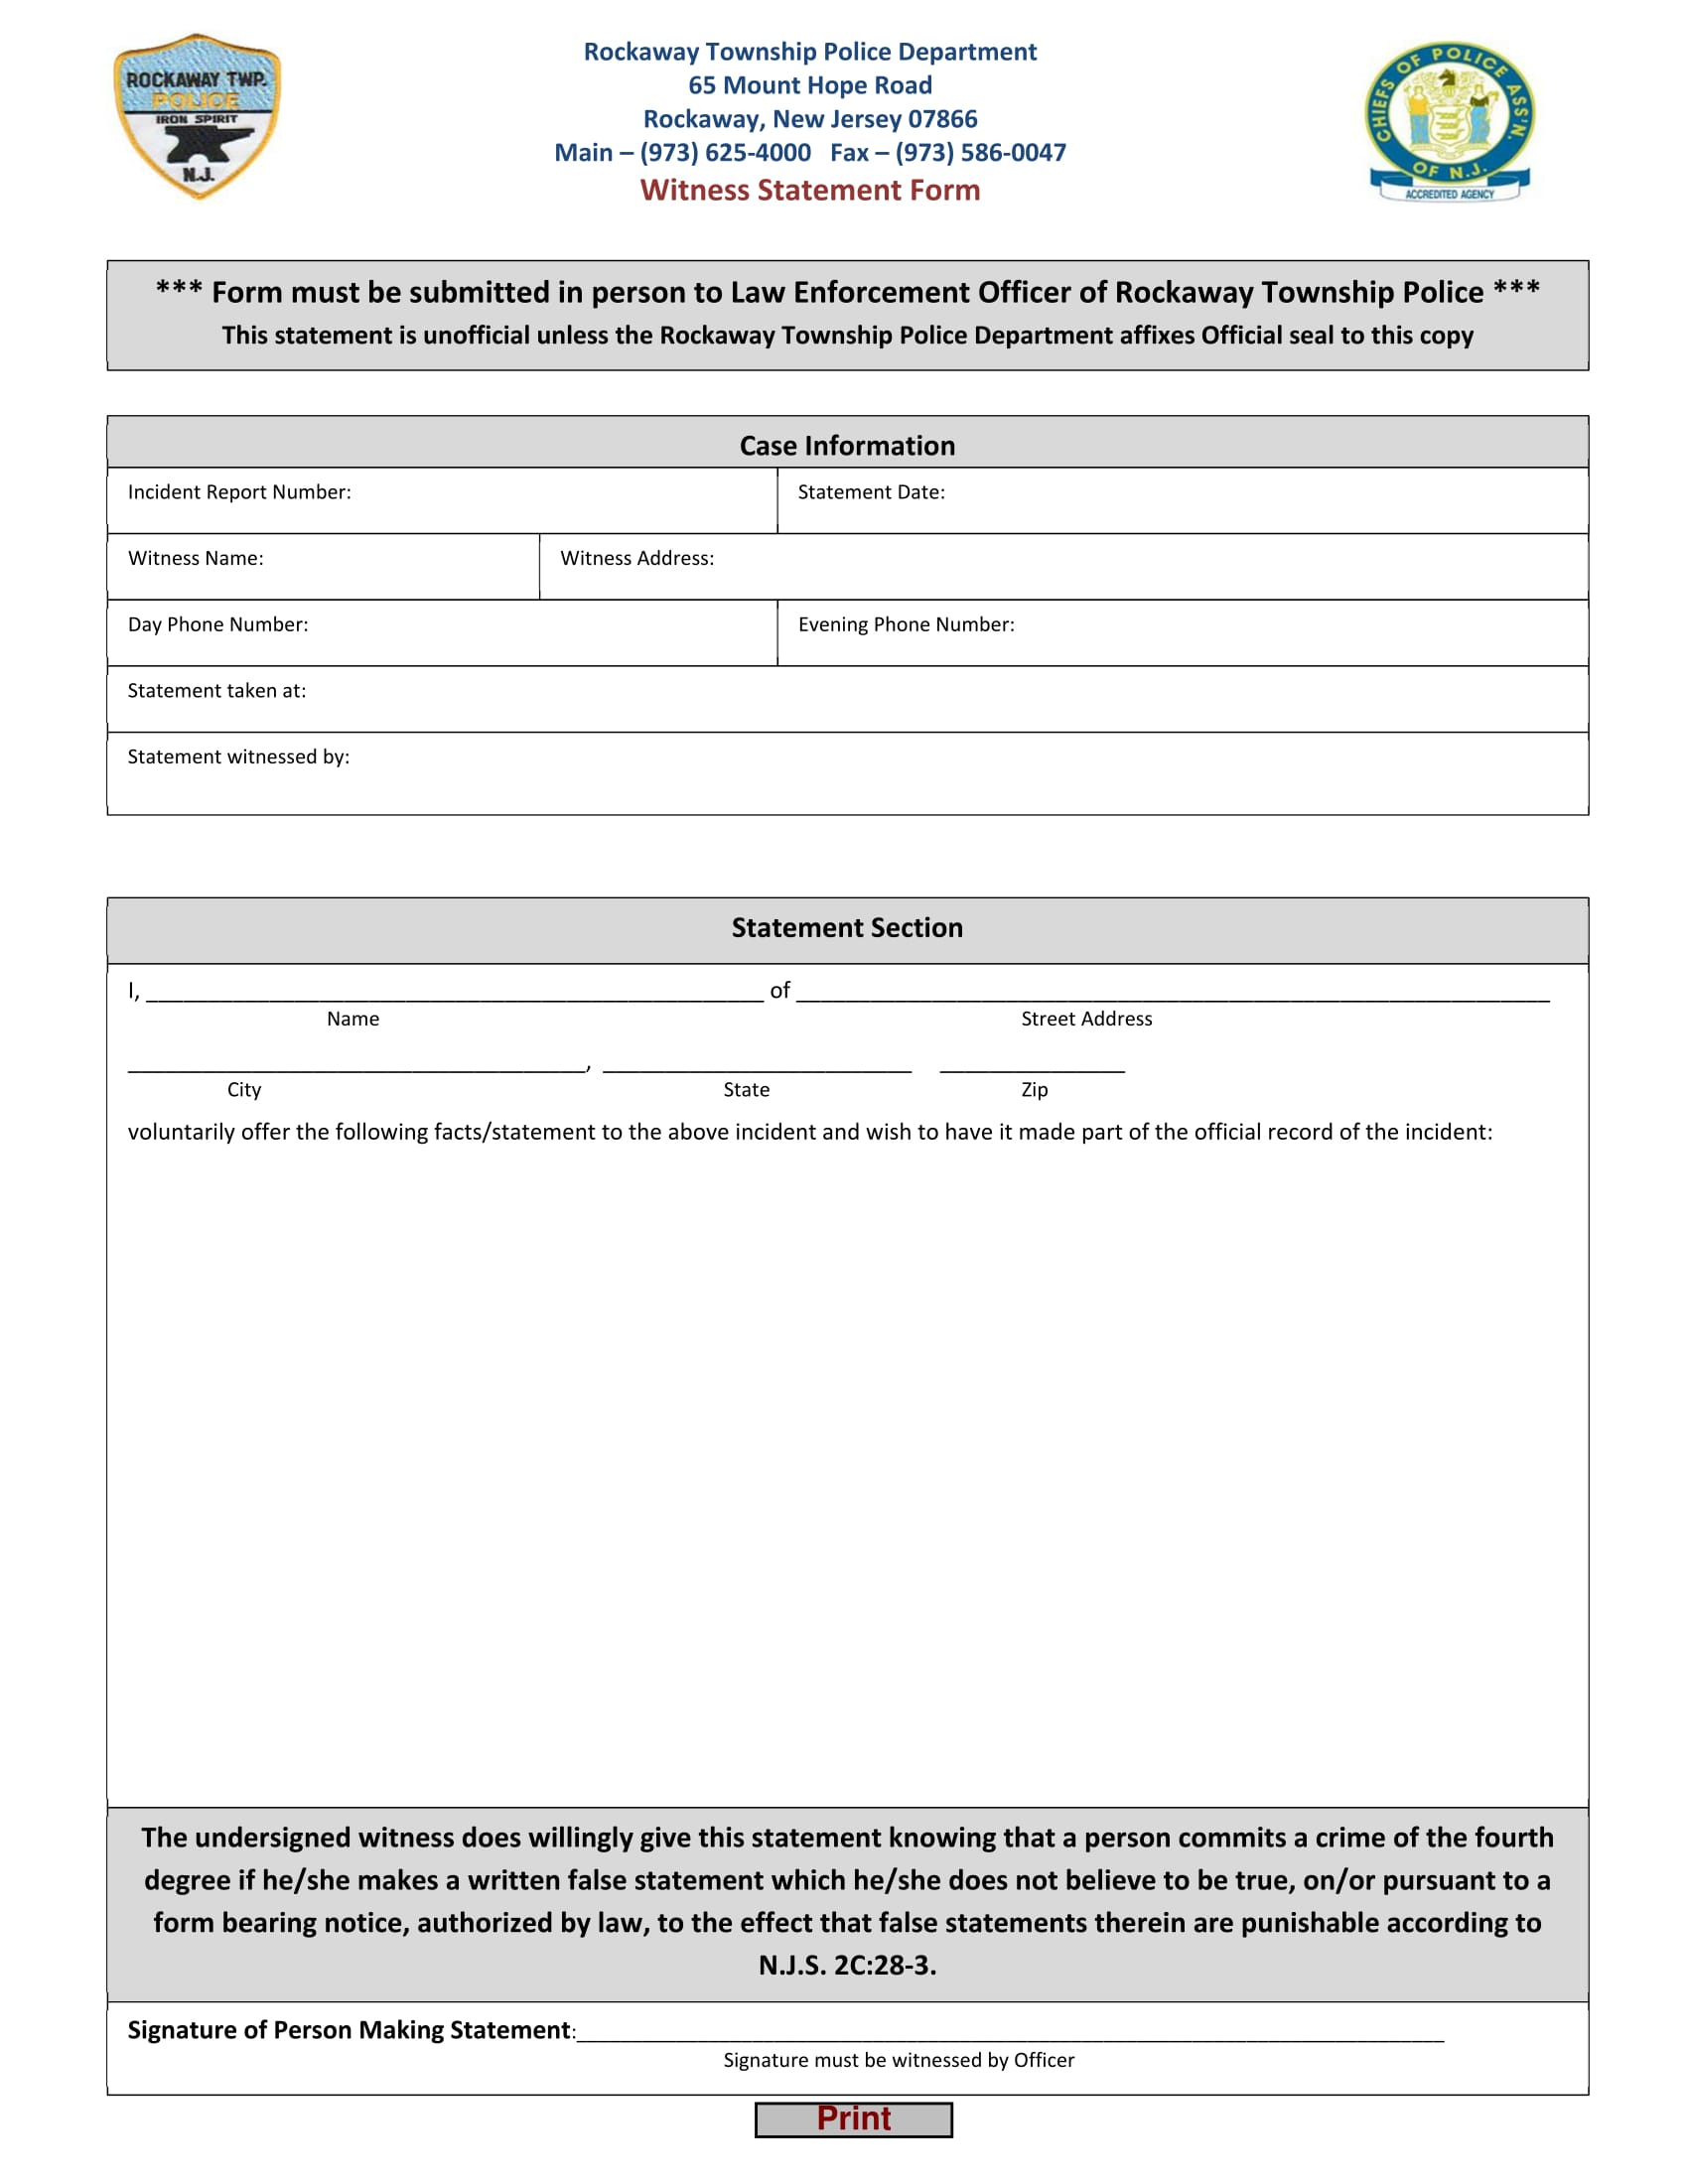 official police department witness statement form 1